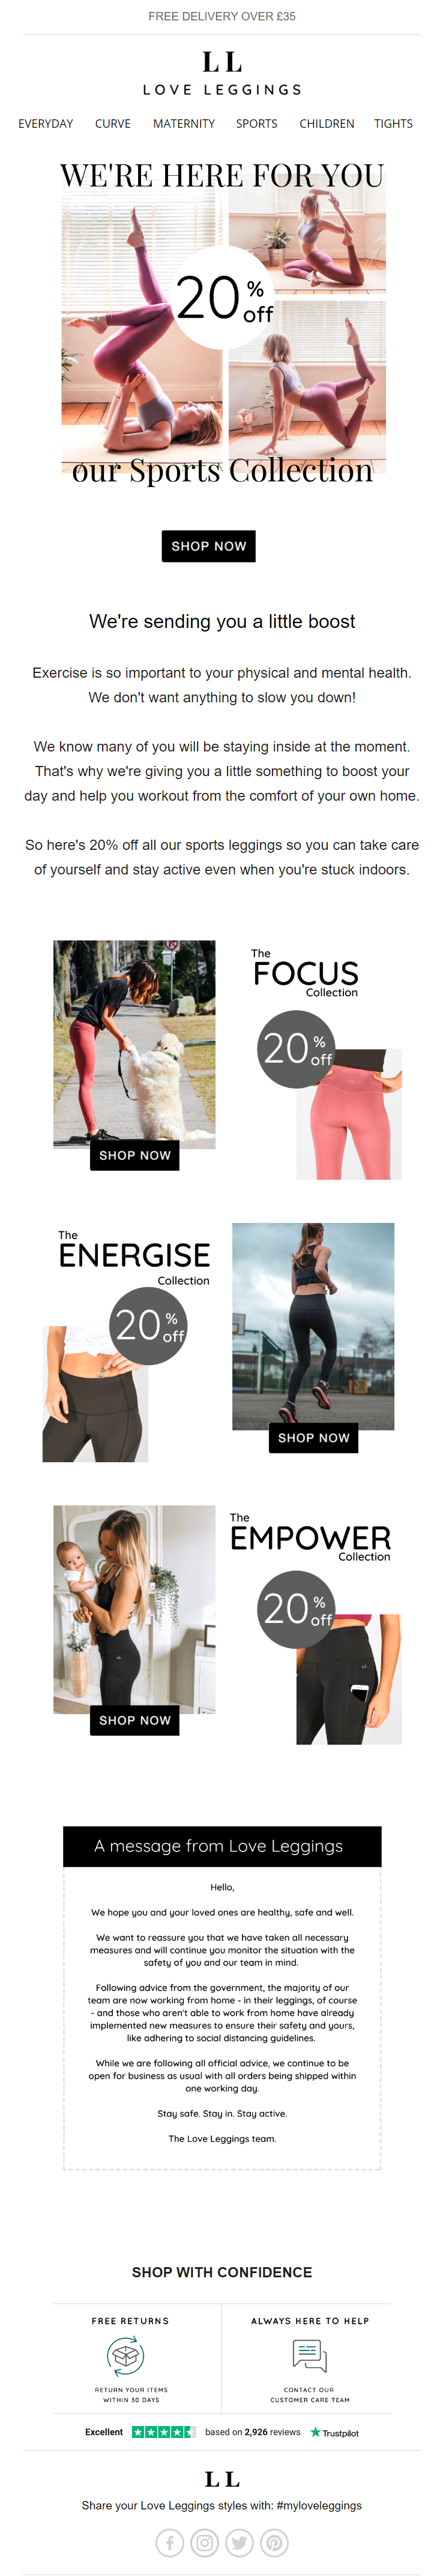 love-leggings-were-here-to-help-you-stay-active